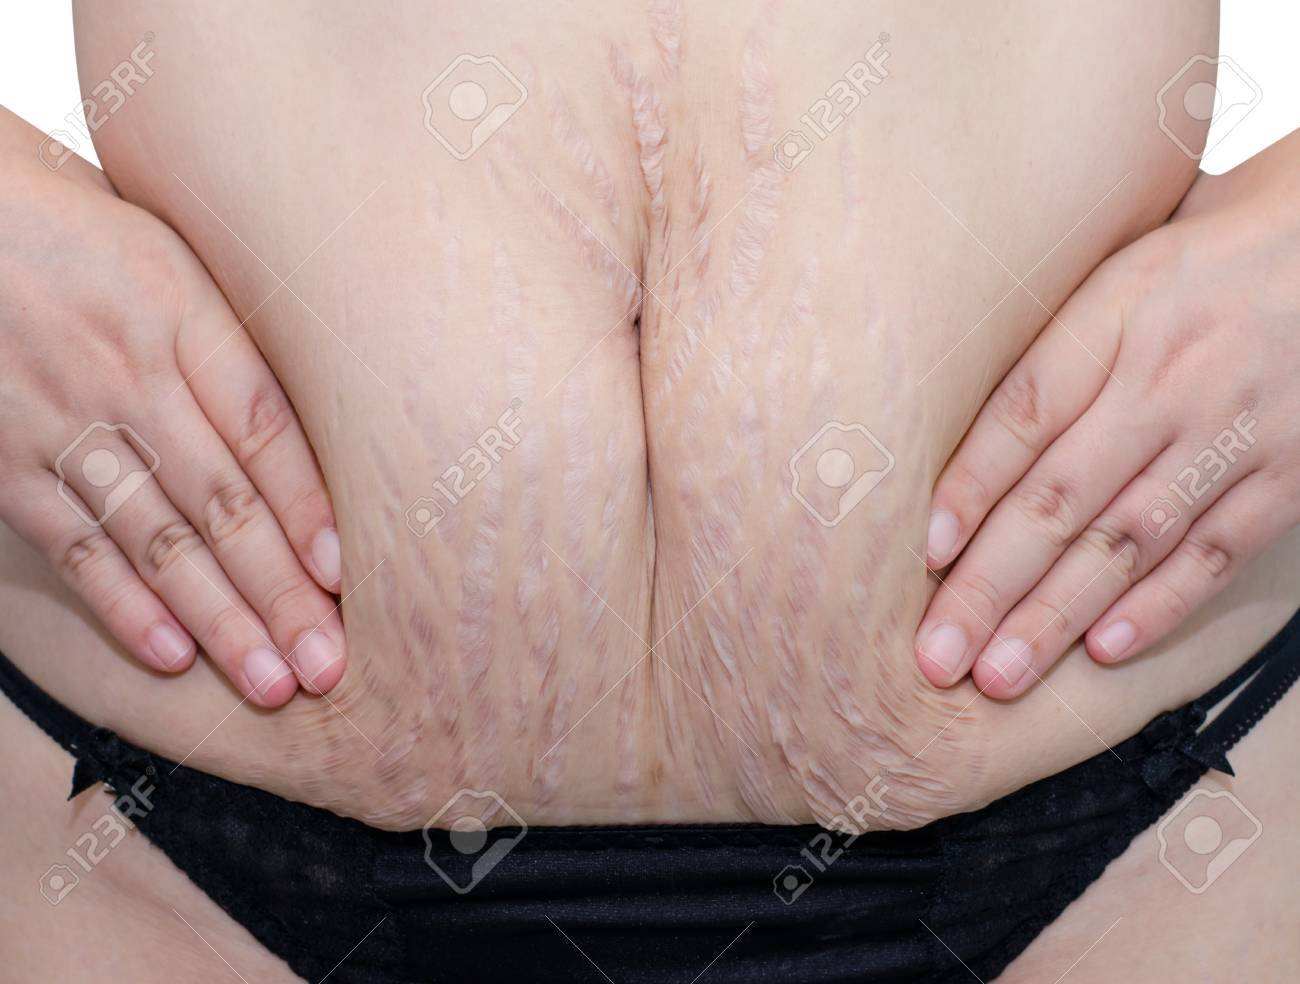 Closeup of woman belly with stretch marks. Stock Photo - 33729660